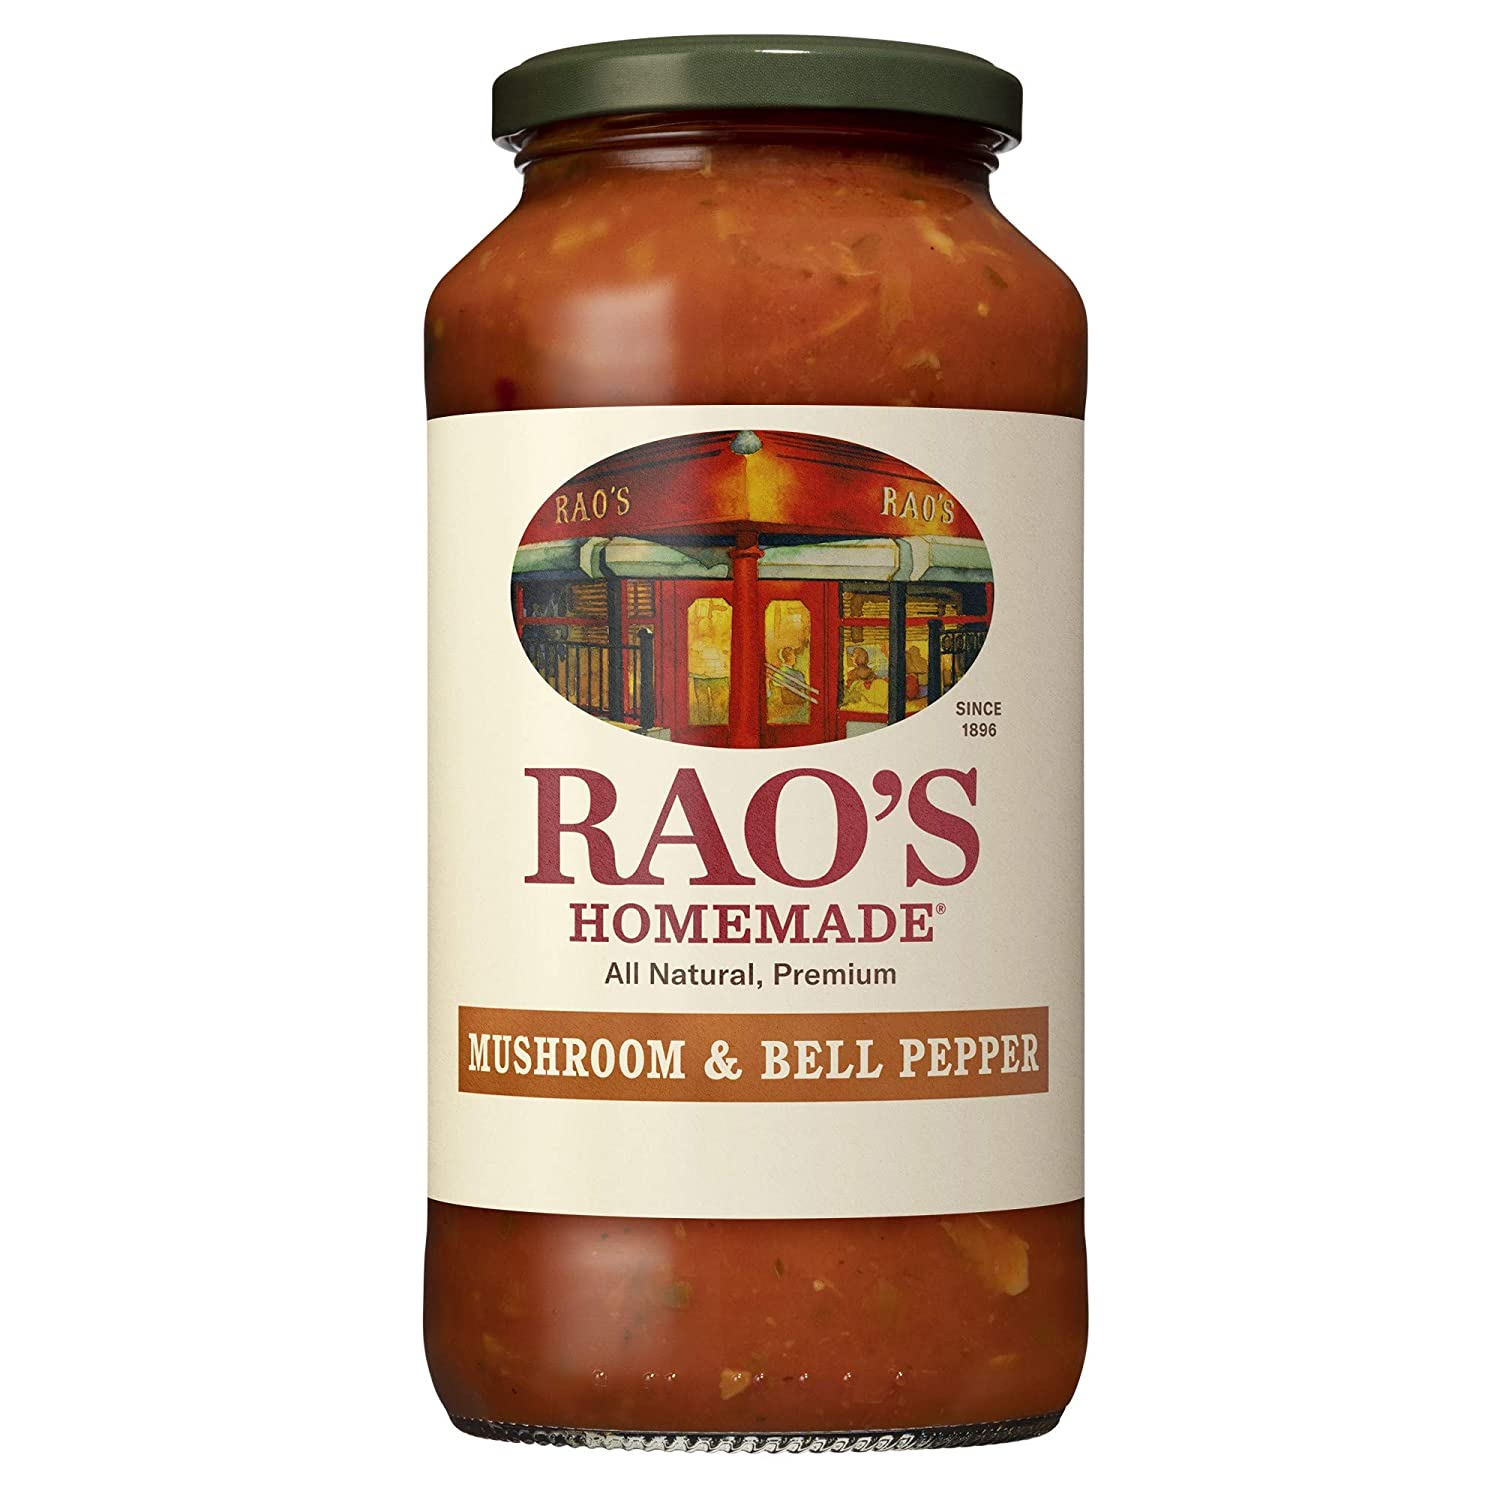 Rao's Homemade Tomato Sauce   Mushroom & Bell Pepper   24 oz   Vegan Pasta Sauce   Carb Conscious, Keto Friendly   All Natural, Premium Quality   With Italian Tomatoes, Mushrooms, Peppers & Onions